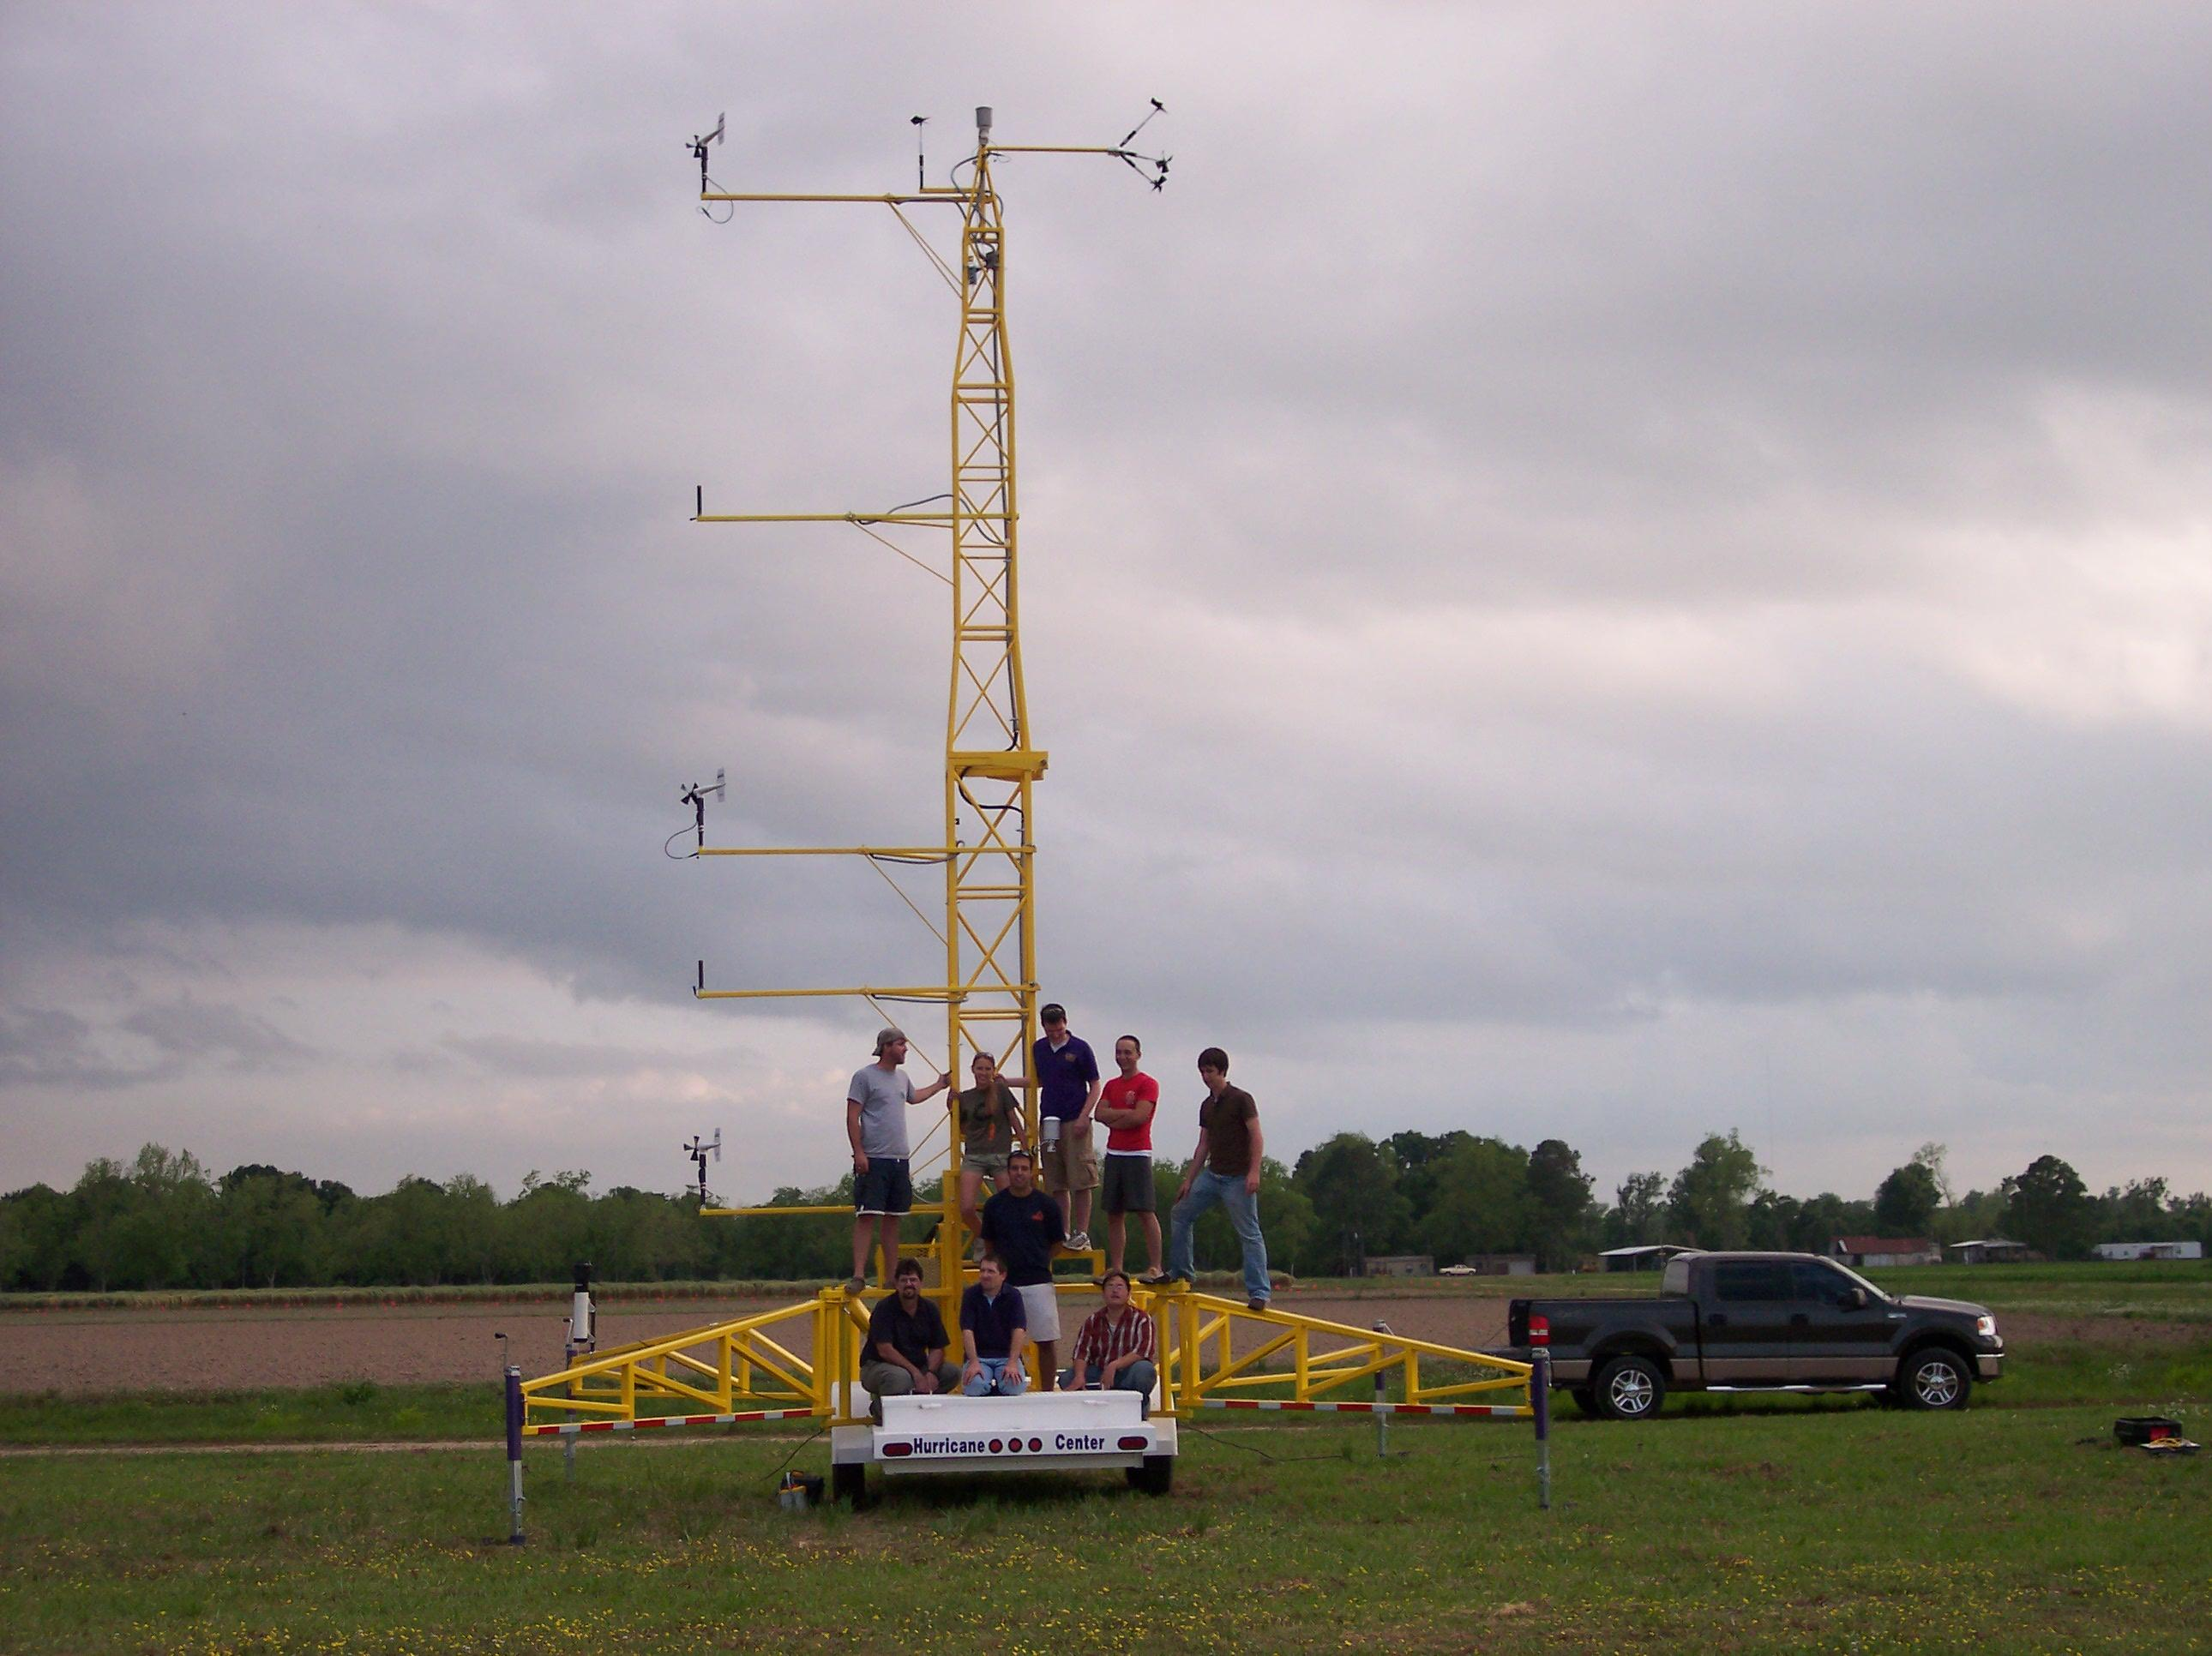 LSU faculty students build ultimate portable weather system to monitor hurricanes